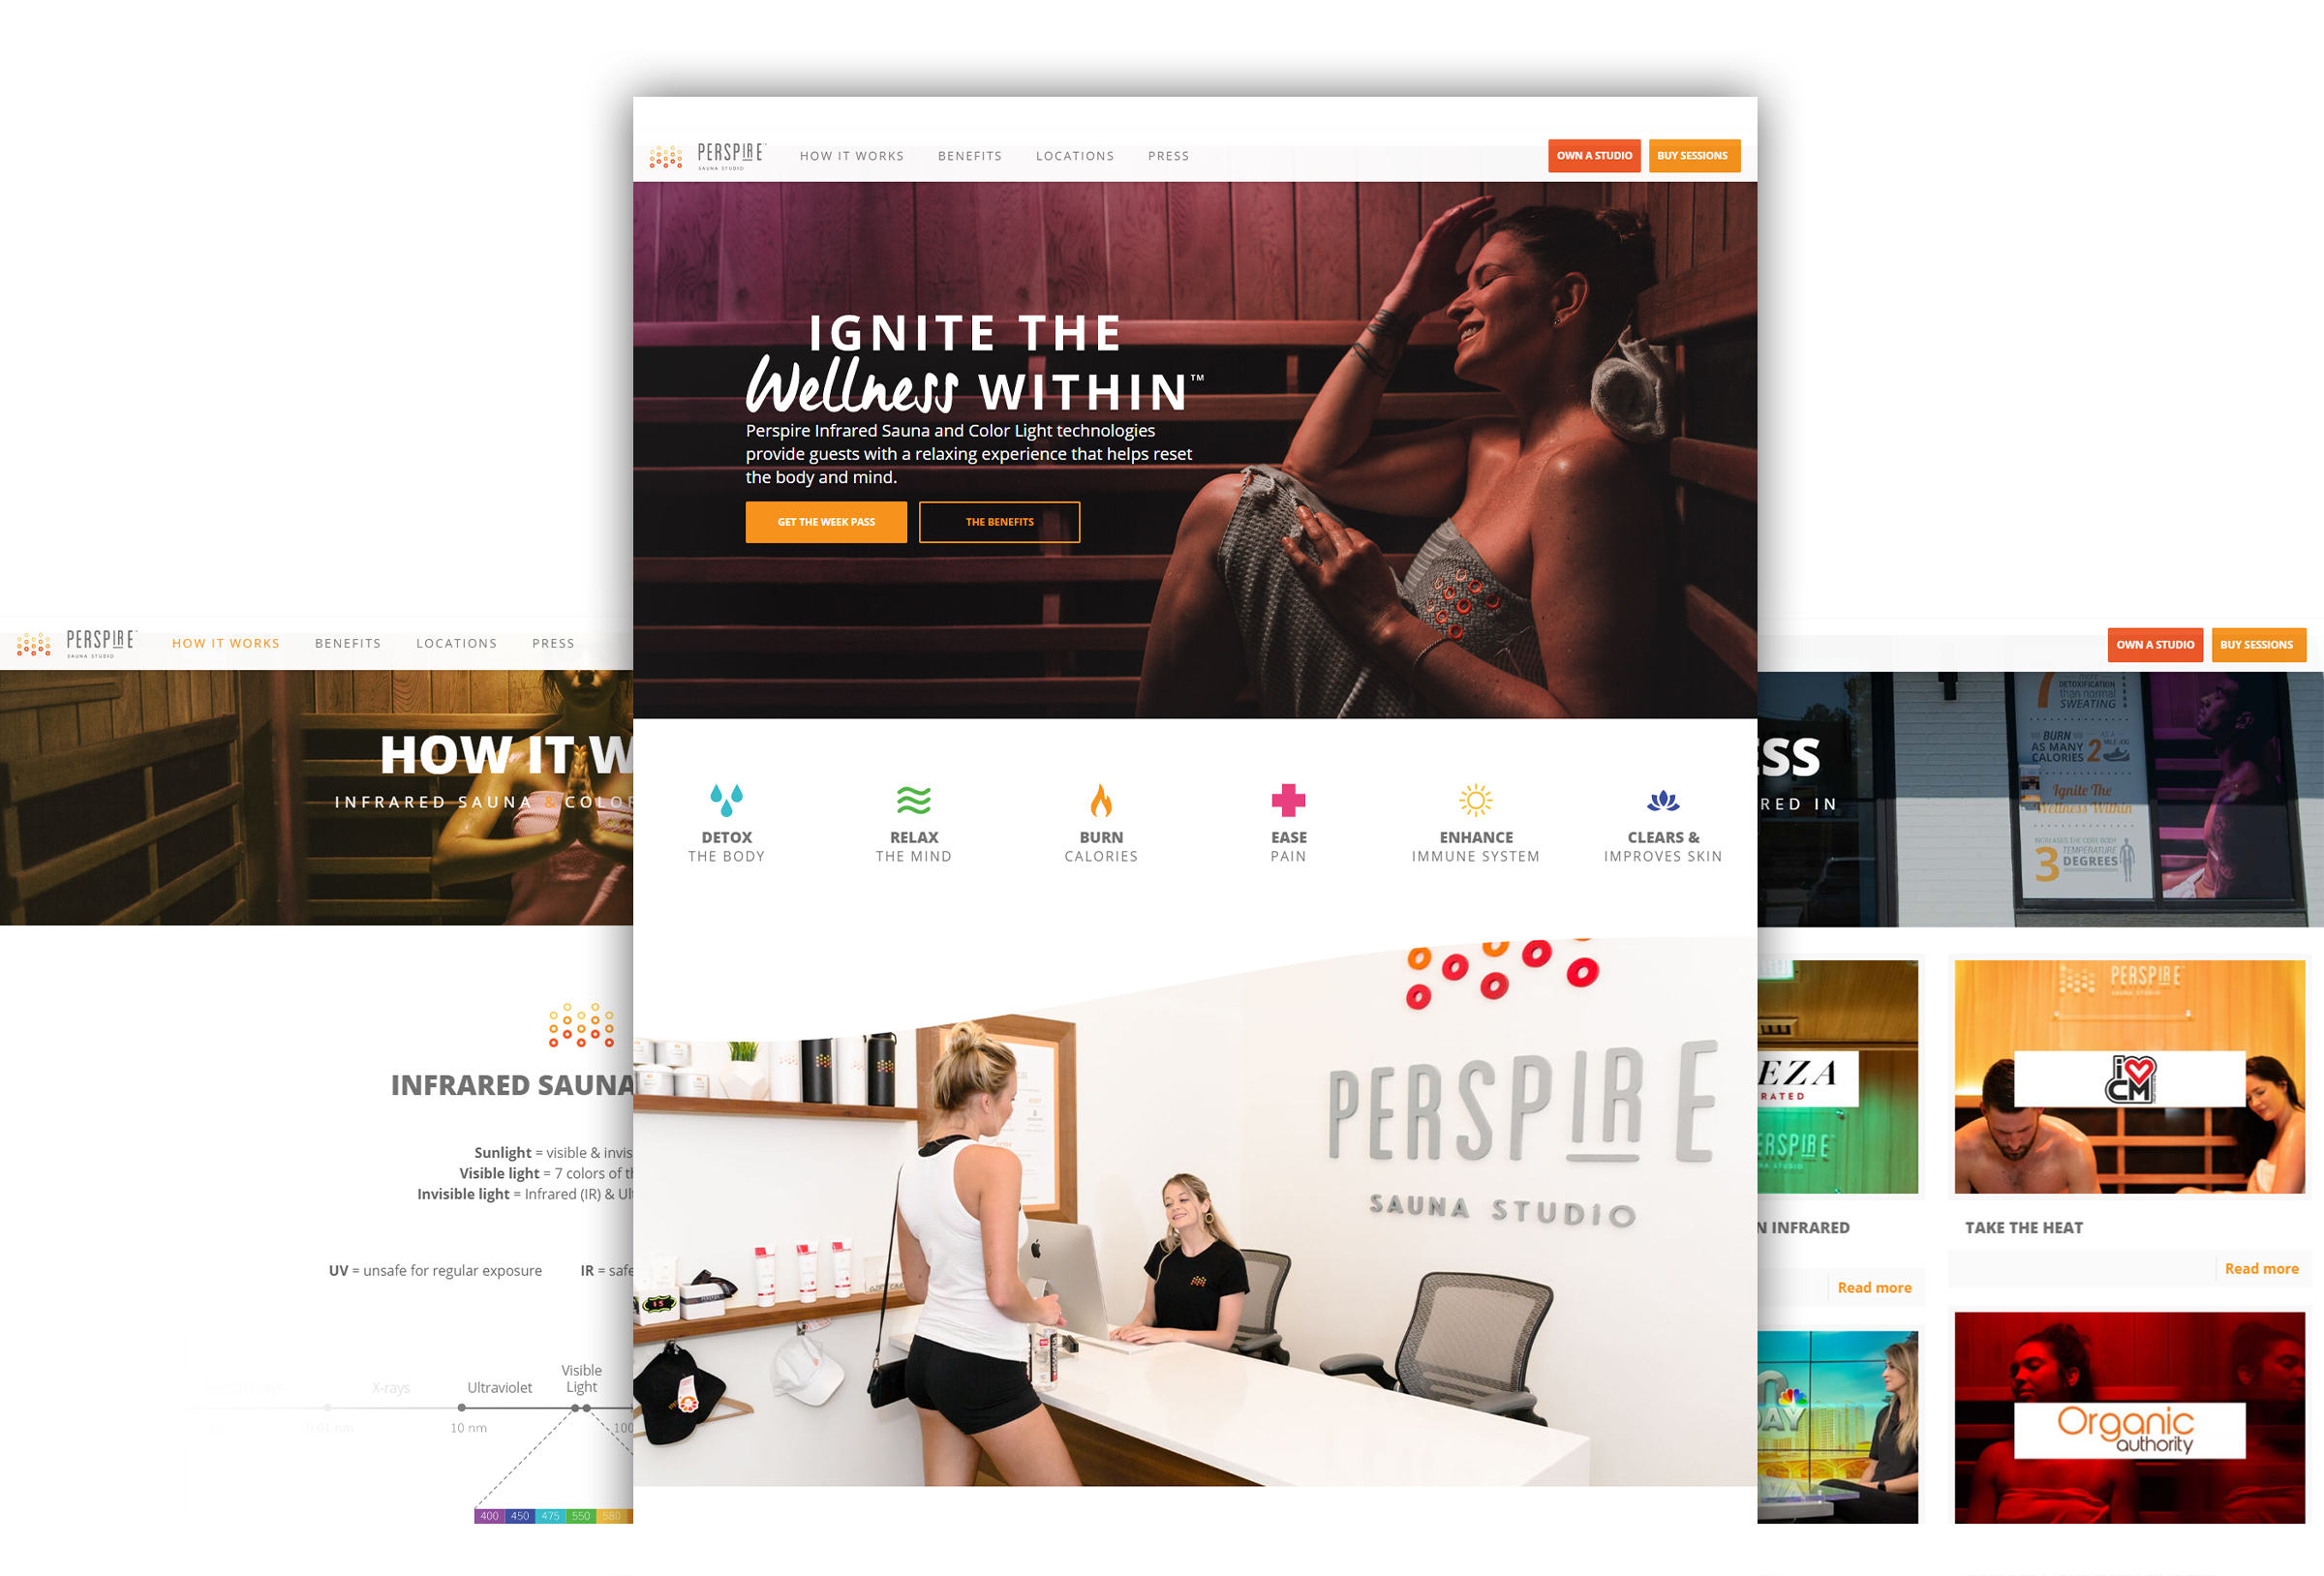 PerspiresaUnaStudio-Web-Design-Main-Showcase-Mockup